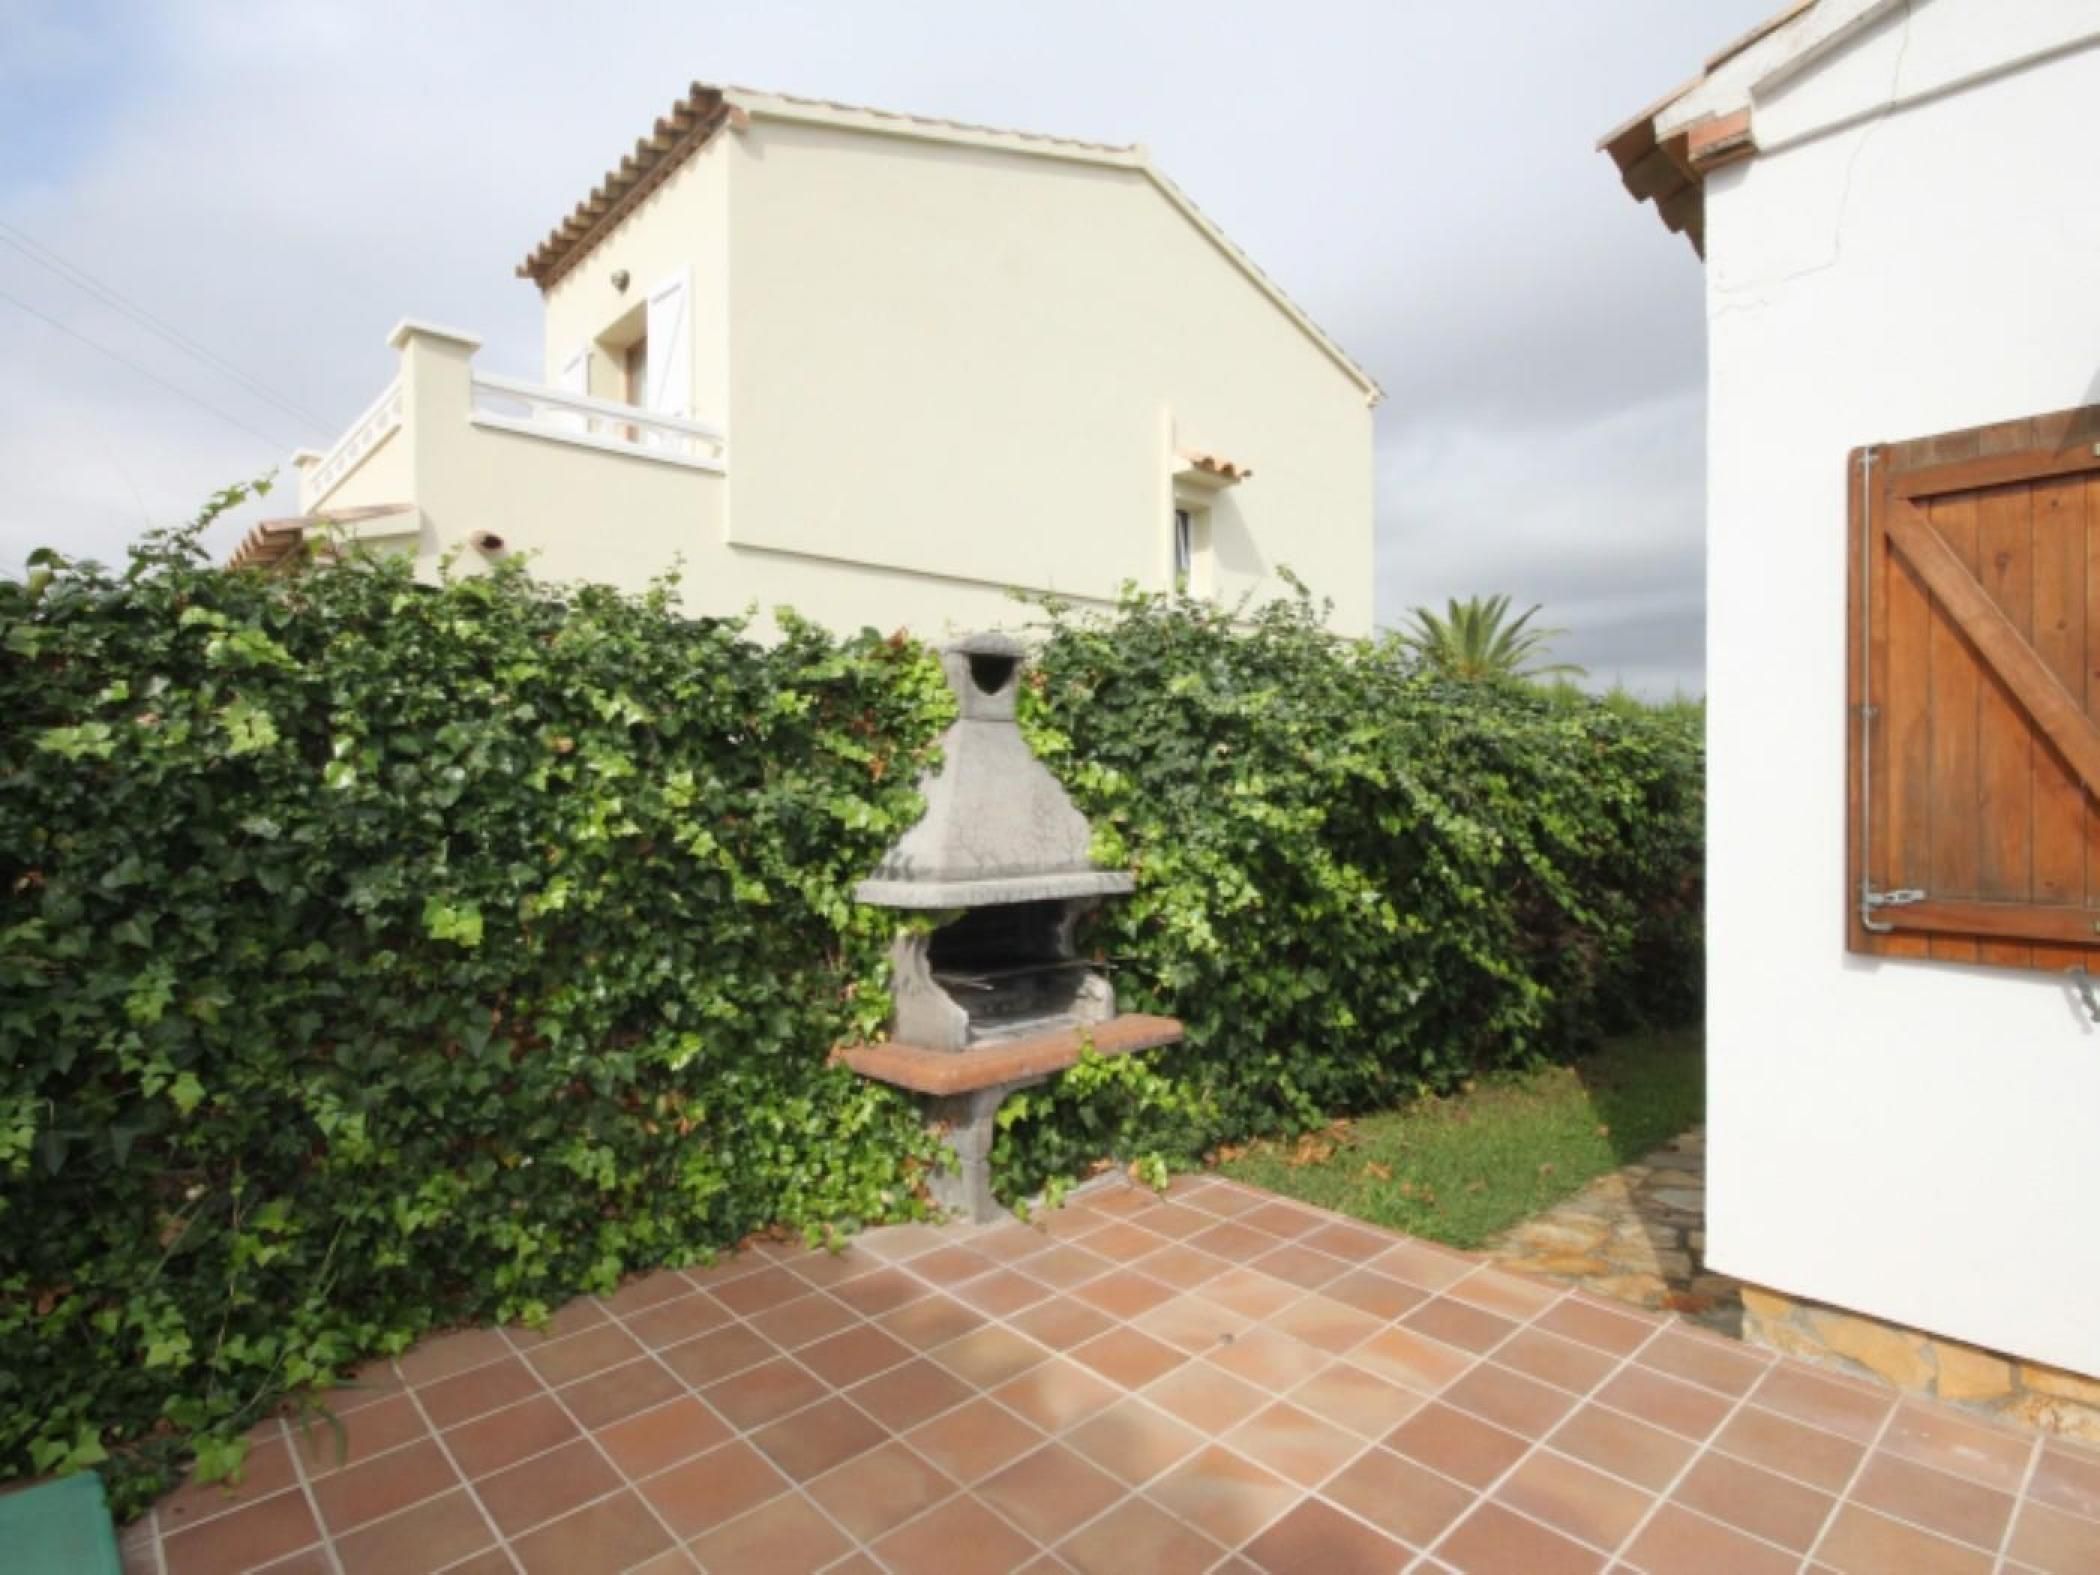 Rent Villa with Swimming pool in l'Escala - Girorooms Travel Estepa Negra - 4